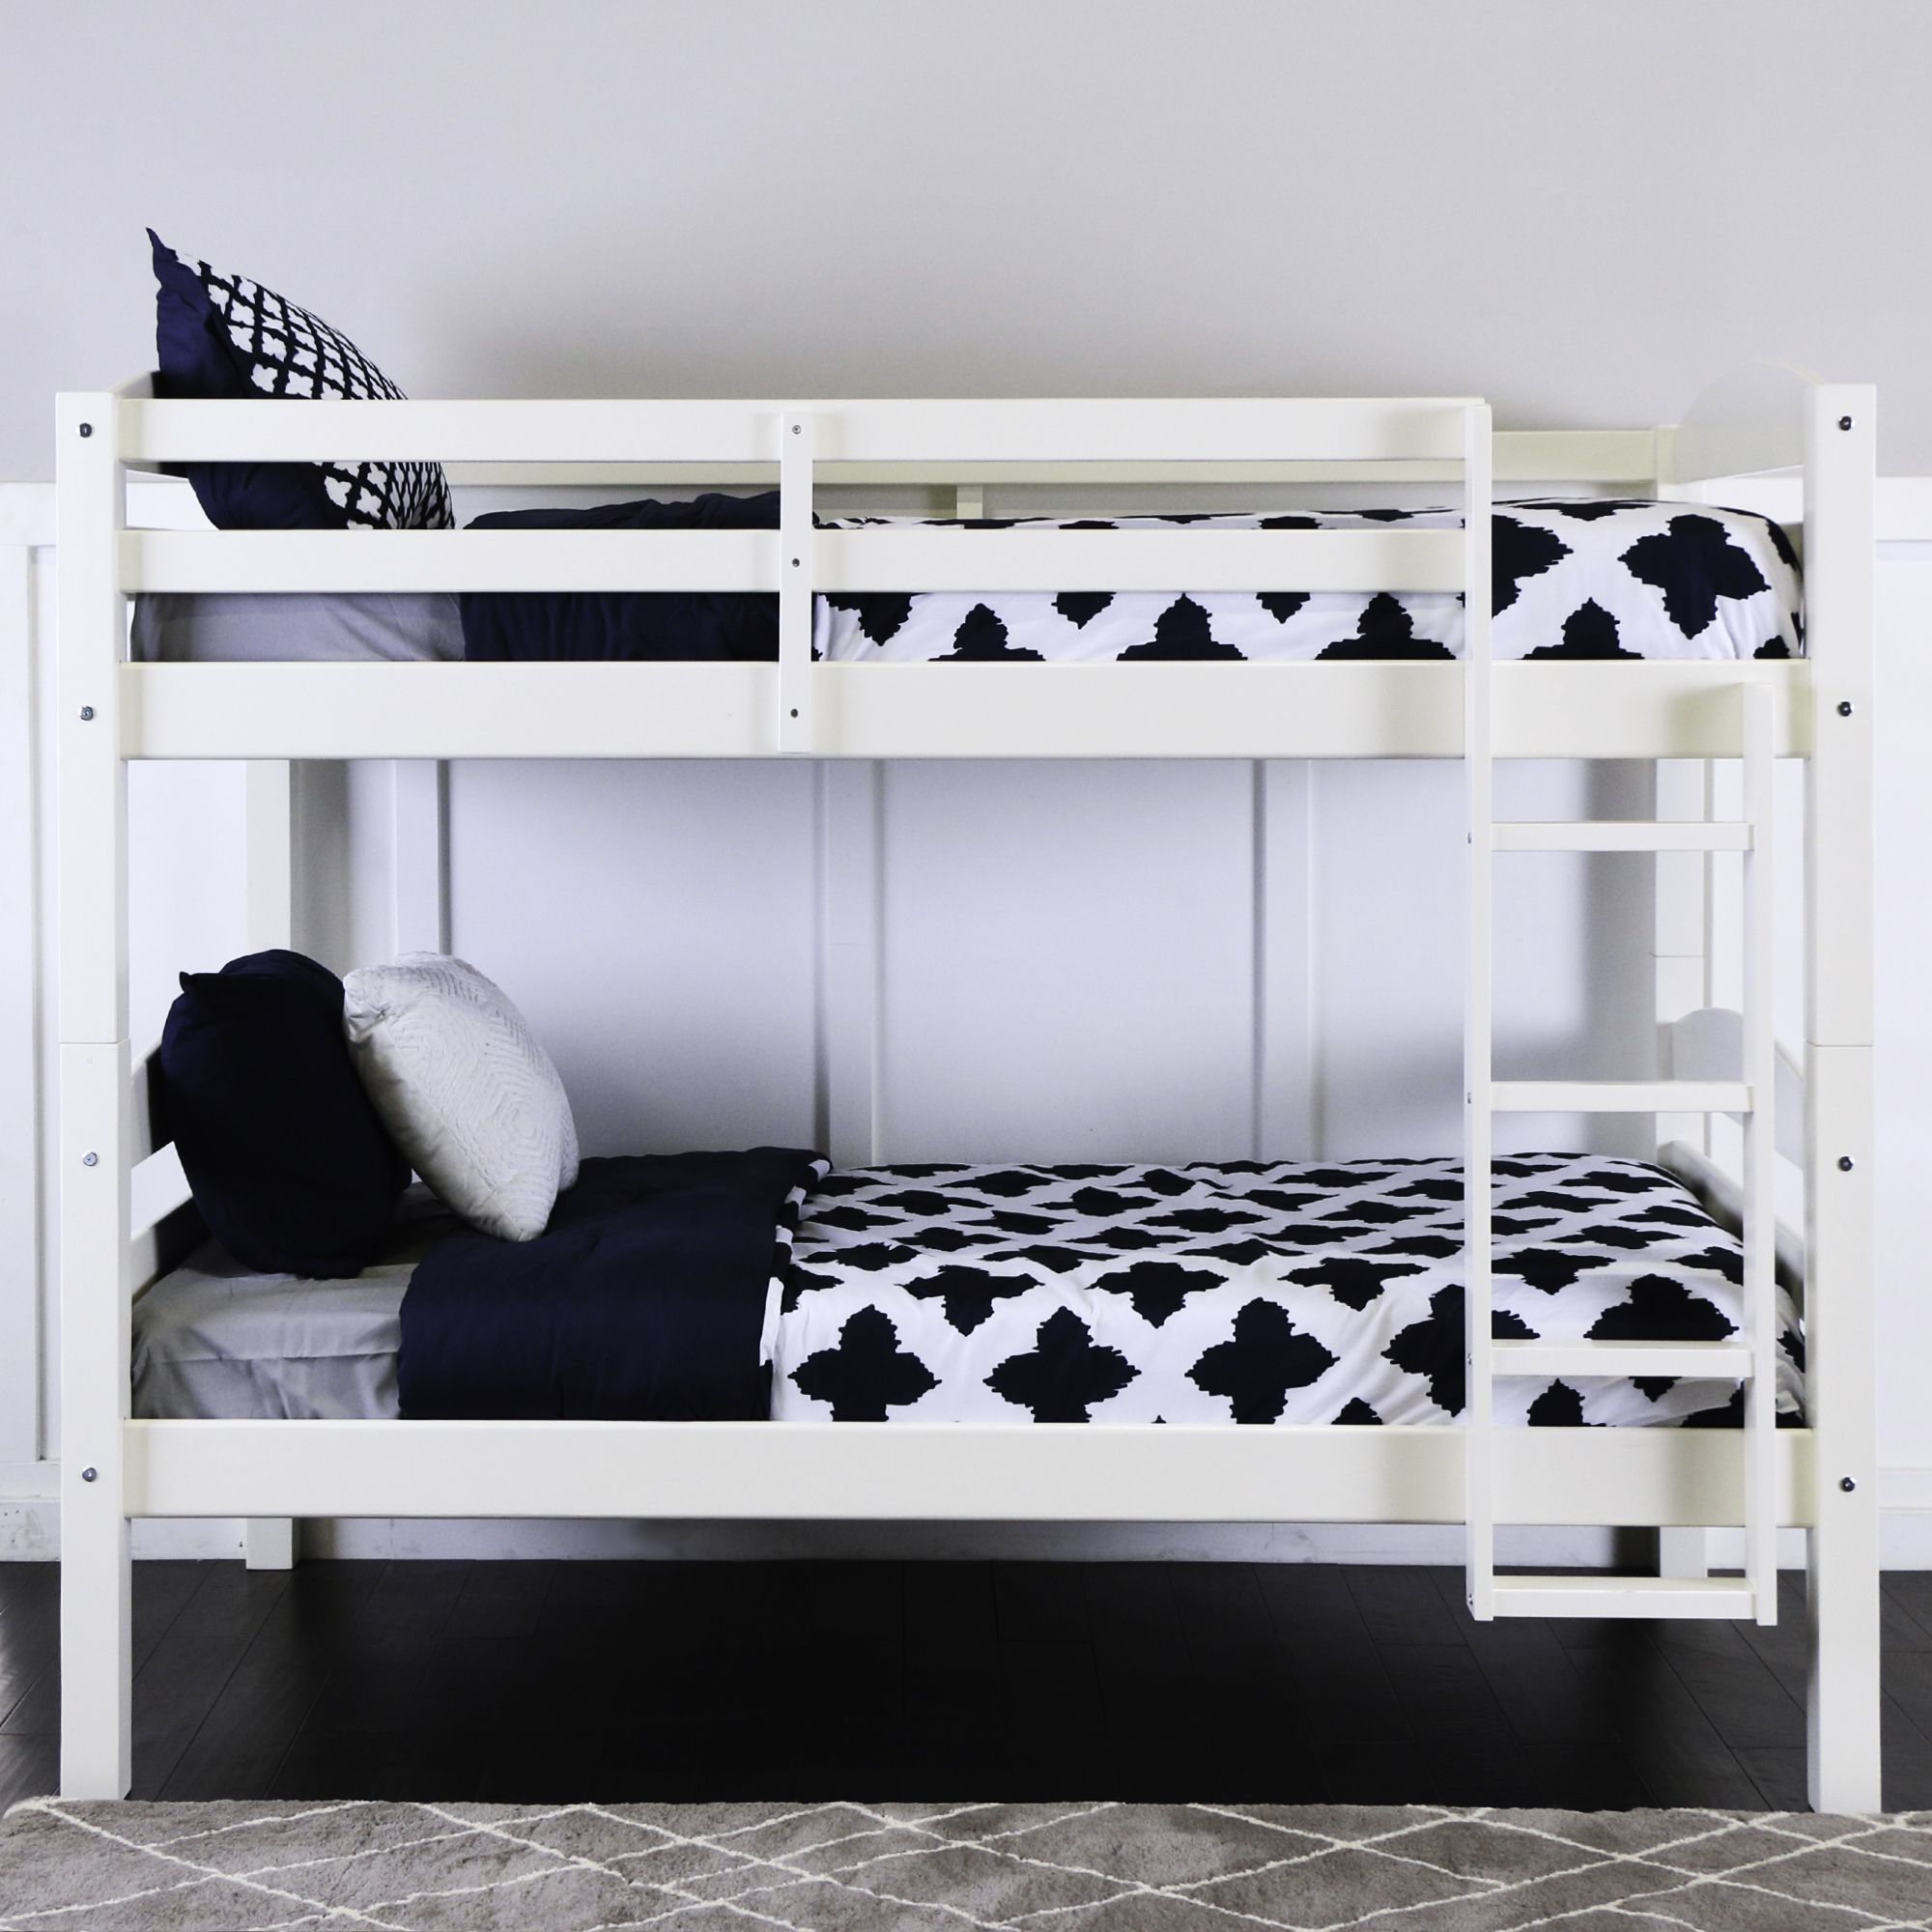 W Trends Twin Size Bunk Bed White Bjs Wholesale Club